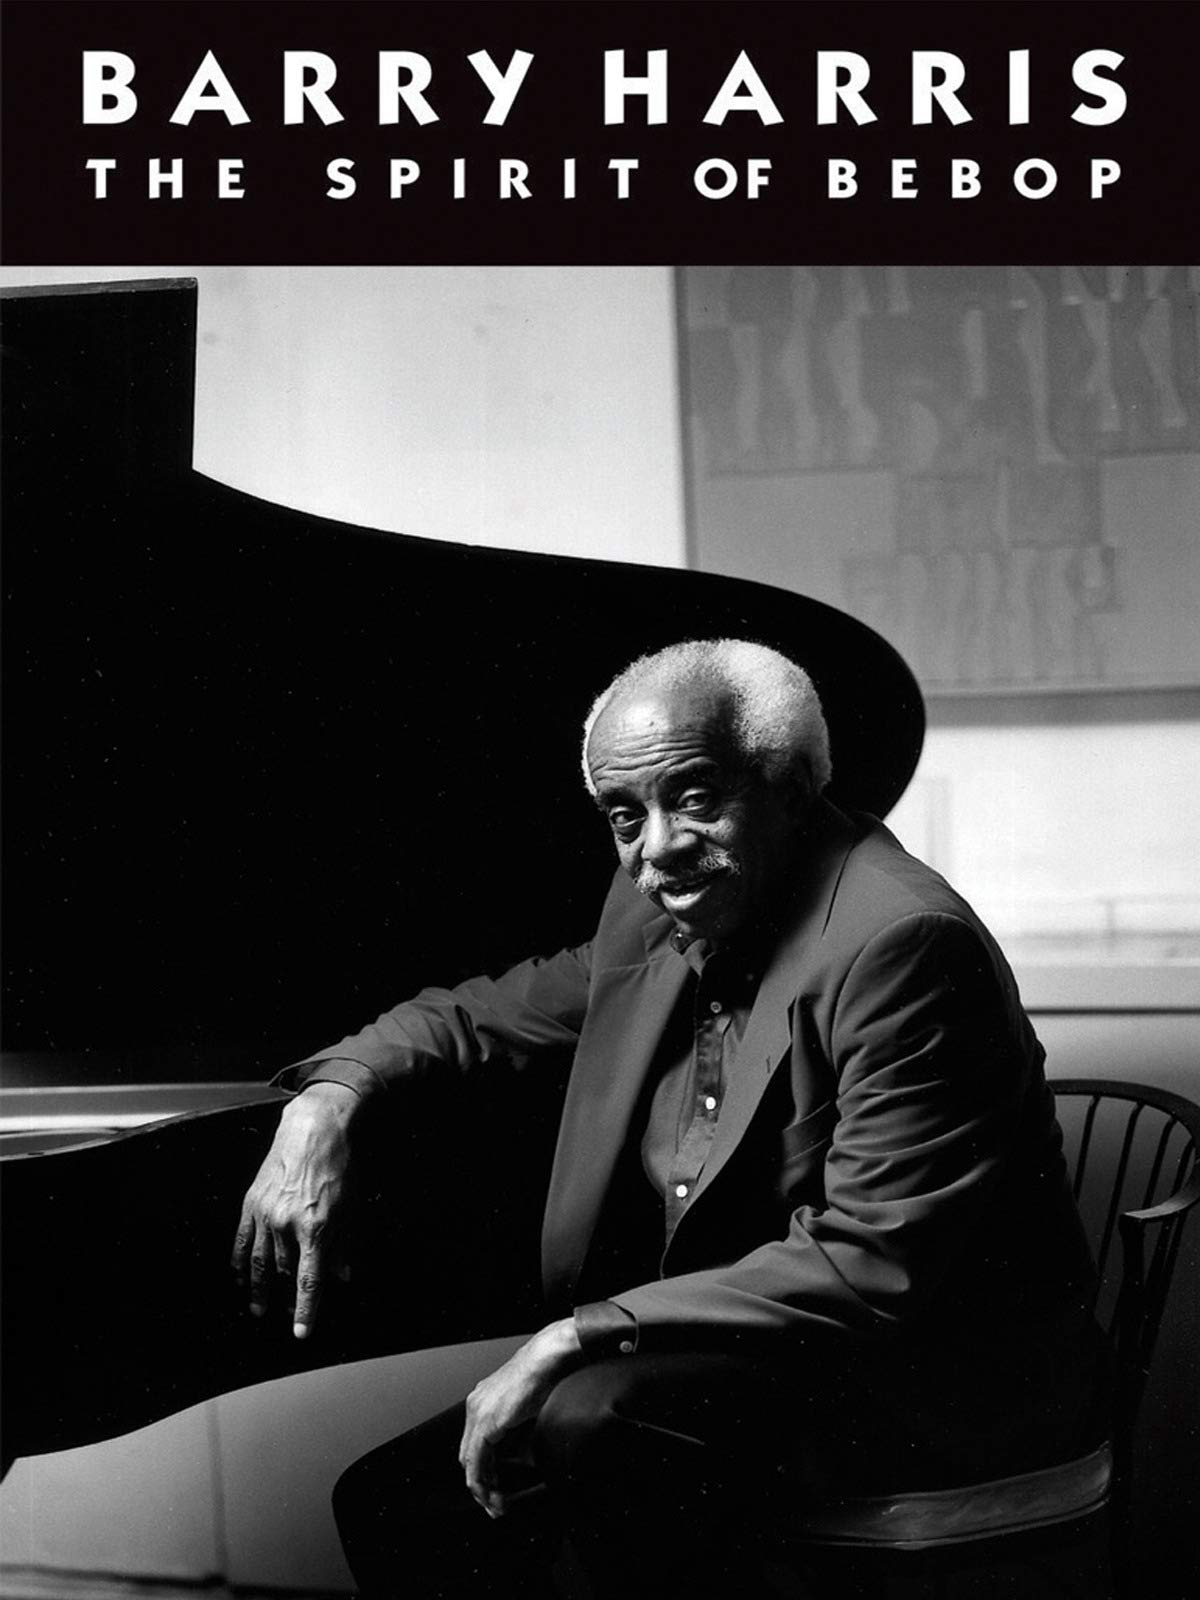 Barry Harris: The Spirit of Bebop